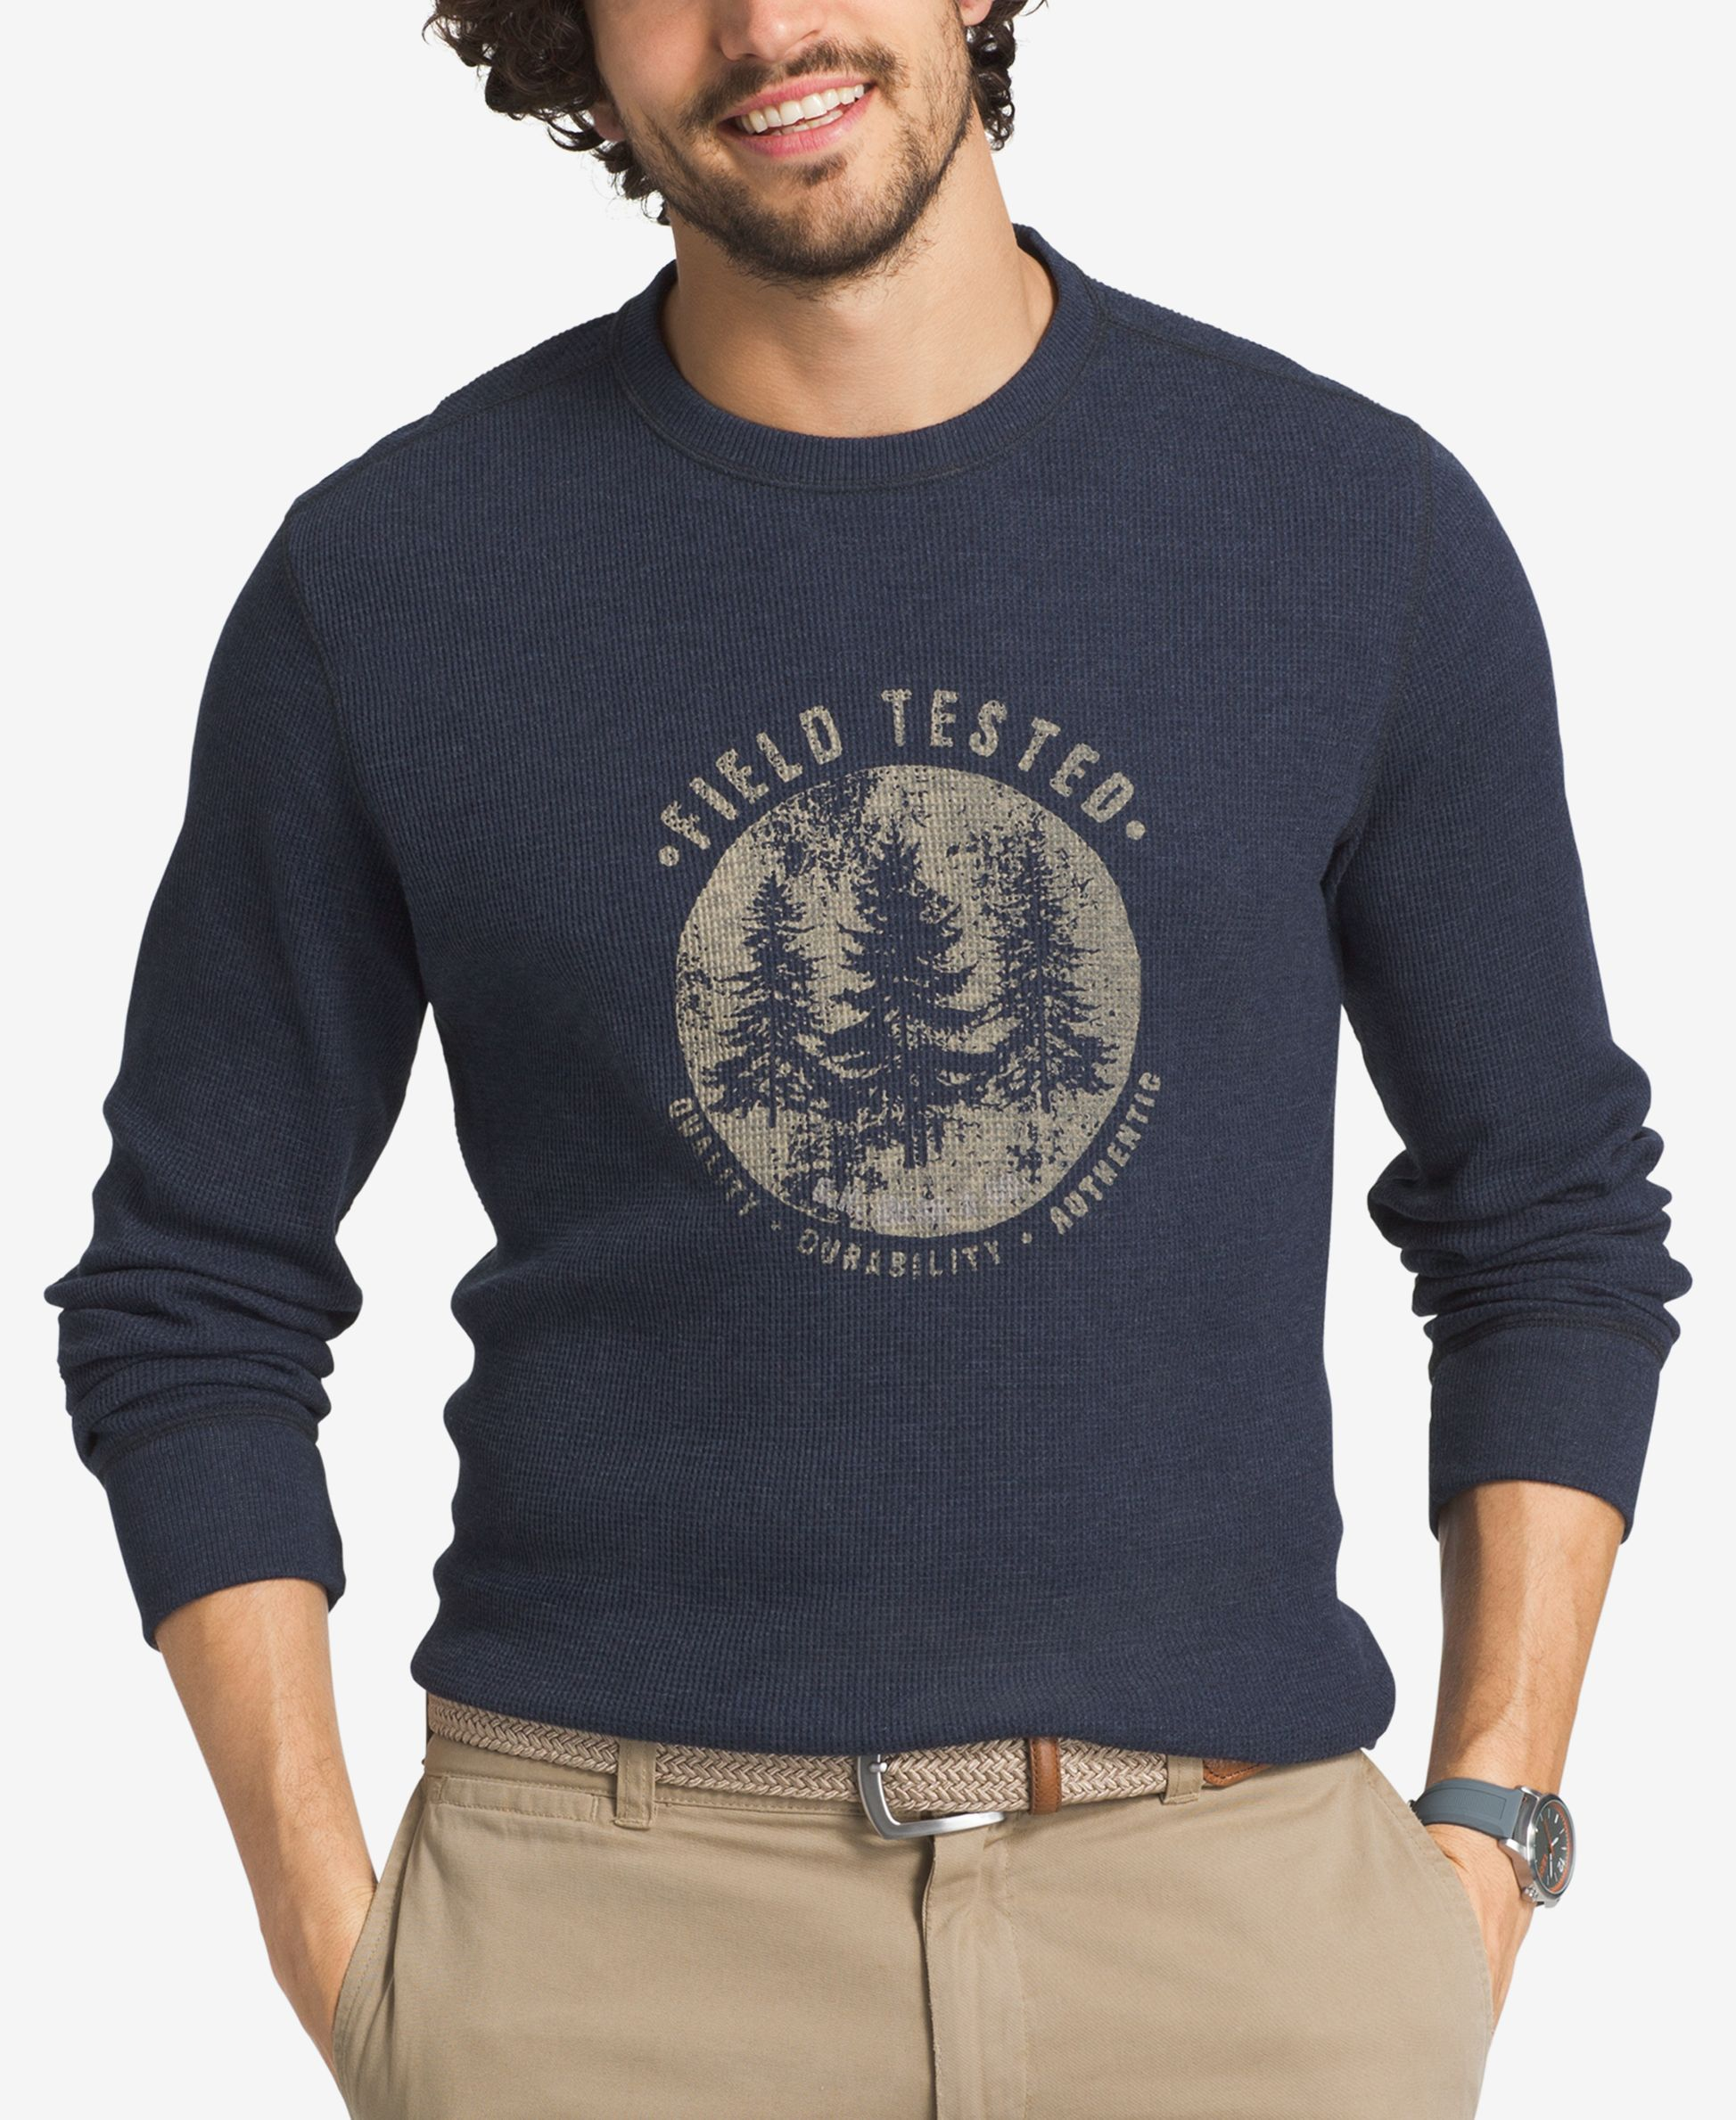 G.h. Bass & Co. Men's Big and Tall Thermal Knit Graphic-Print Shirt